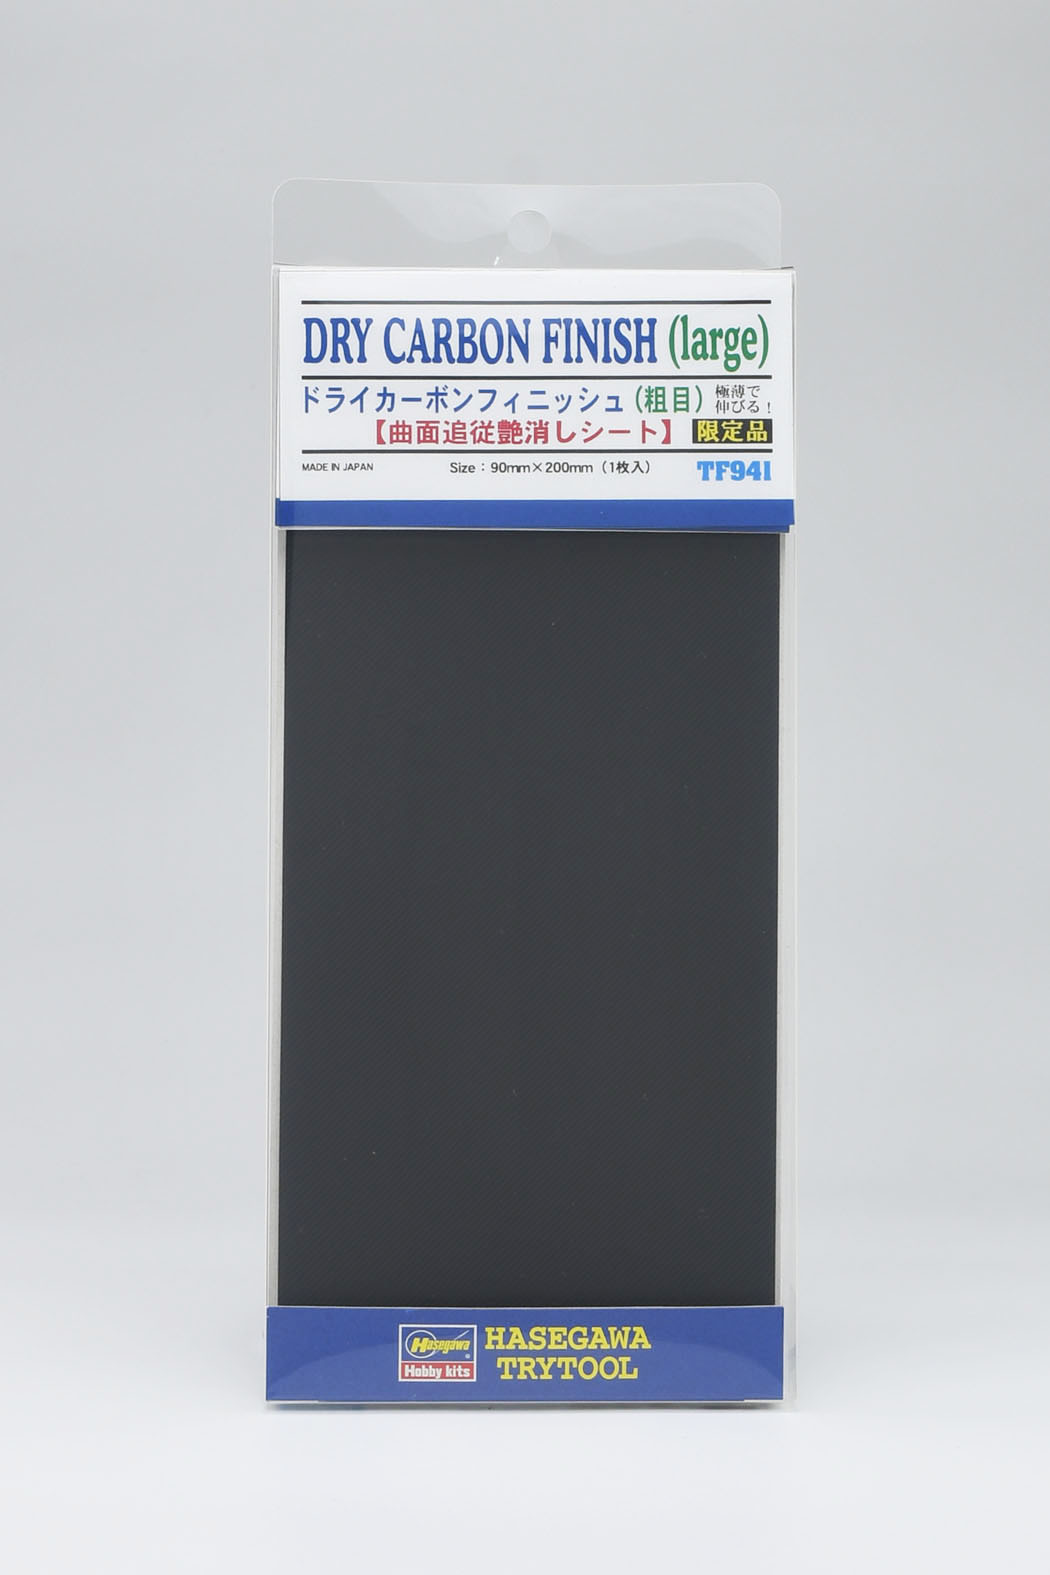 Hasegawa DRY CARBON FINISH (LARGE) (size: 90mm x 200mm) (TF941)